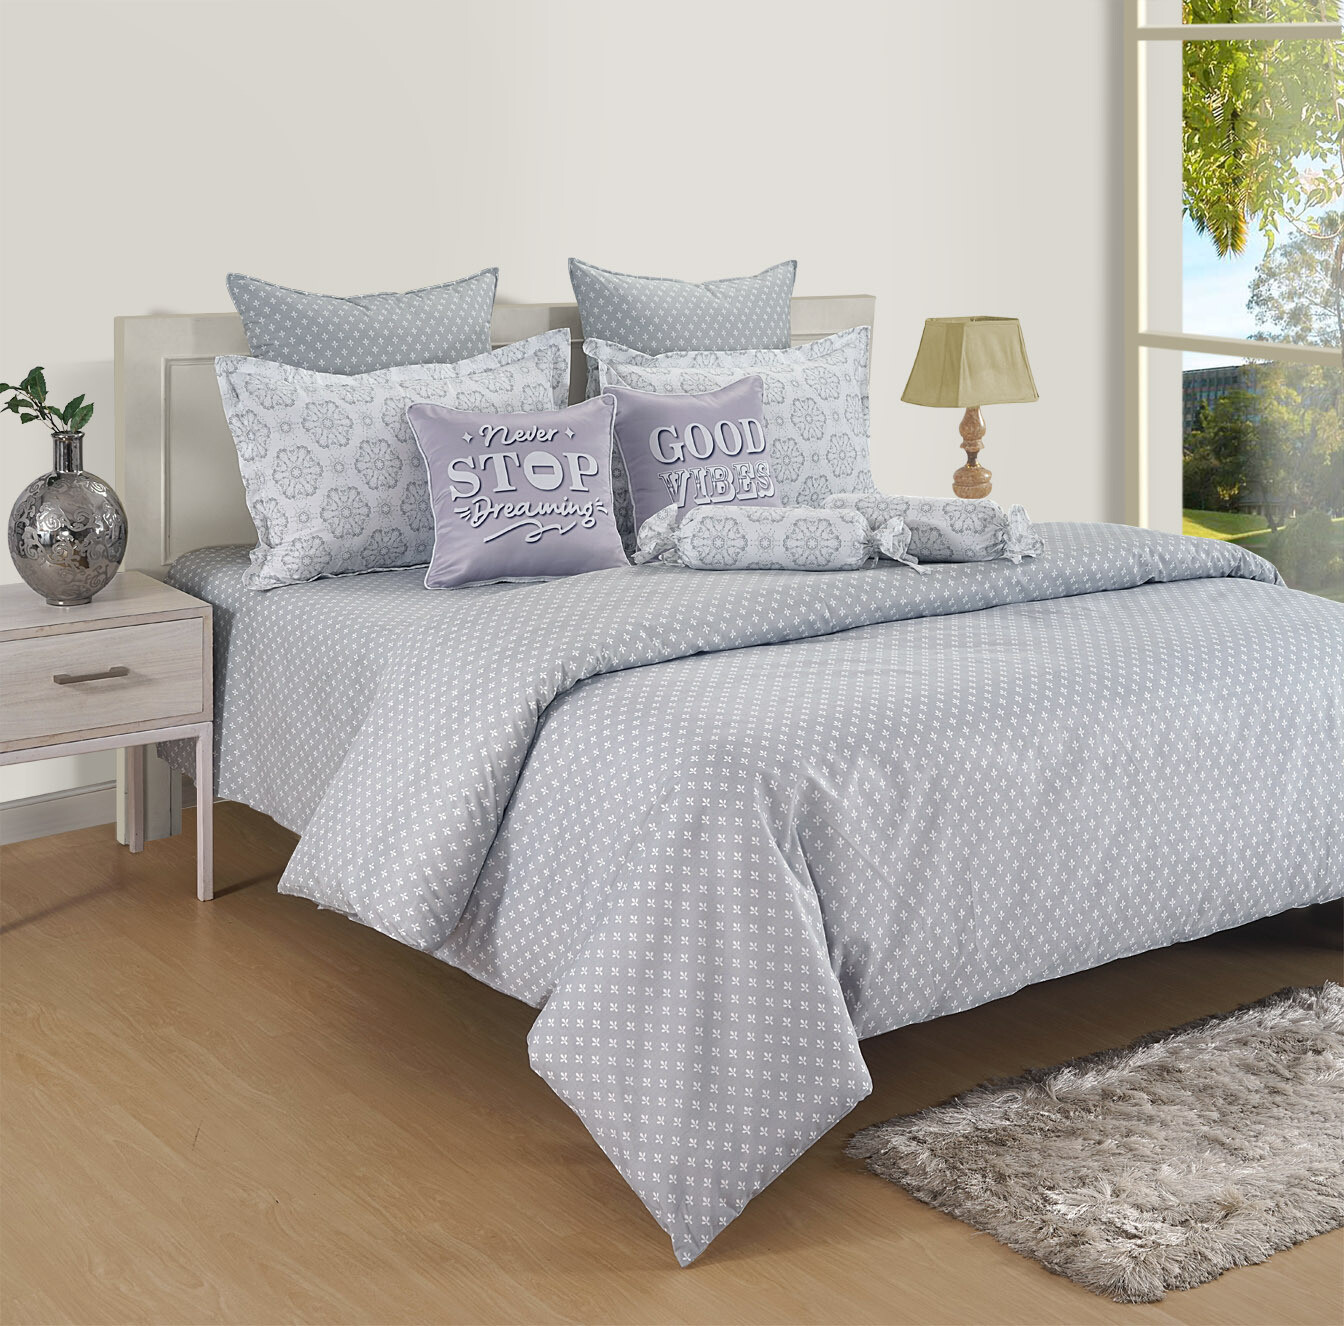 Swayam Pastel Vogue 210 TC Pure Cotton Metal Gray Double Bedsheet with 2 Pillow Covers